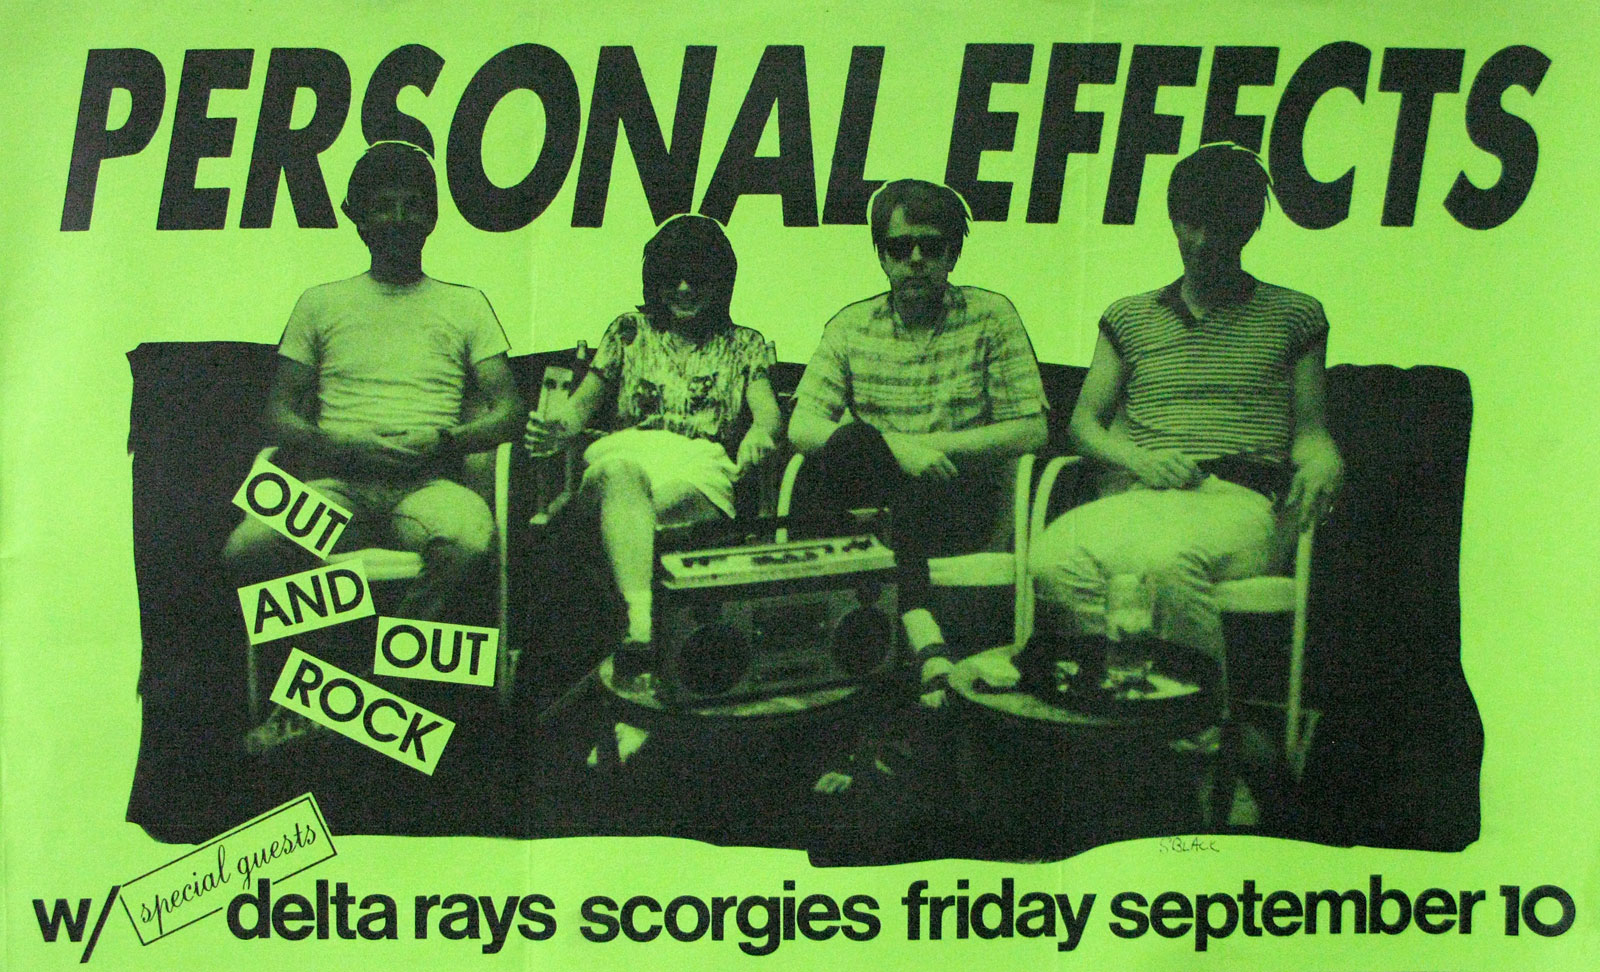 Poster for Personal Effects with the Delta Rays at Scorgie's in Rochester, New York on 09.10.1982